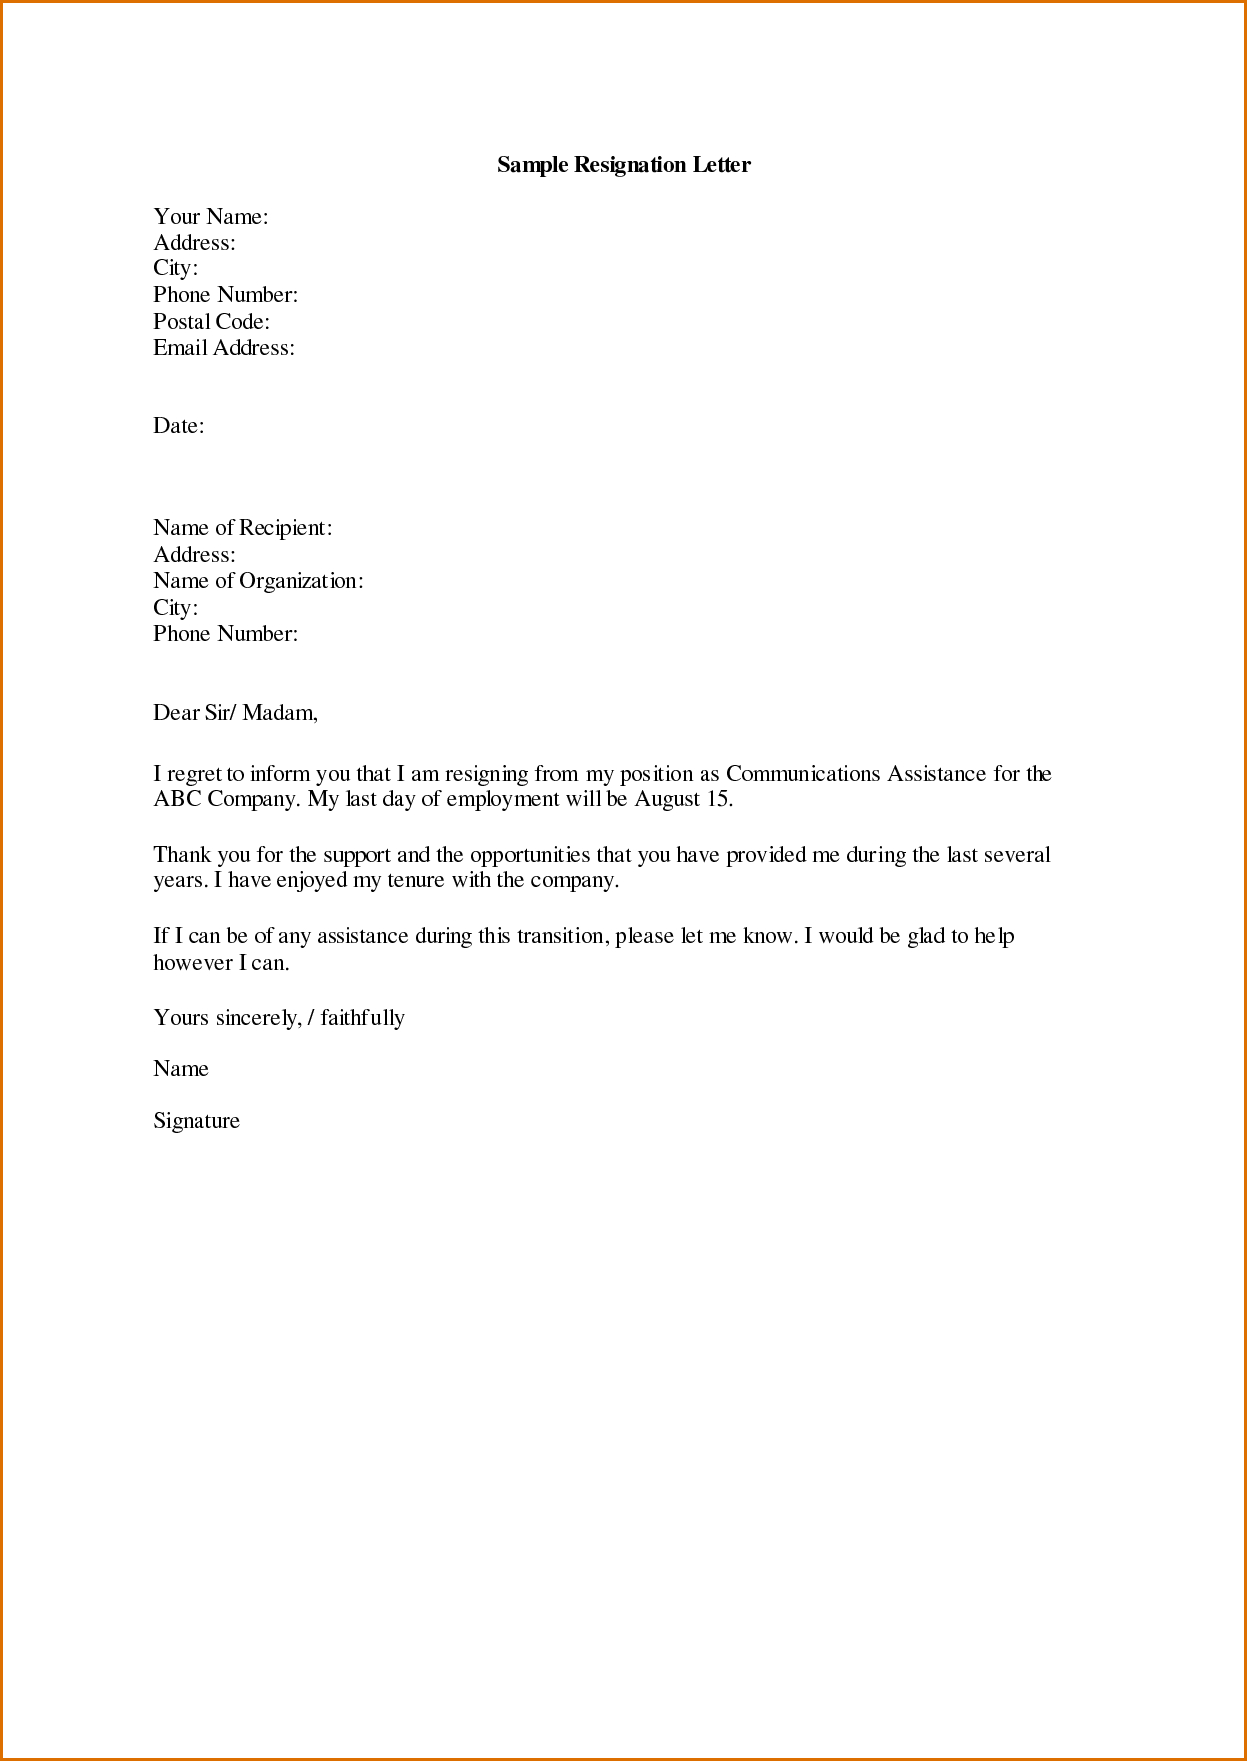 letter of resignation template teacher example-sample displaying 16 images for letter of resignation sample toolbar 11-b